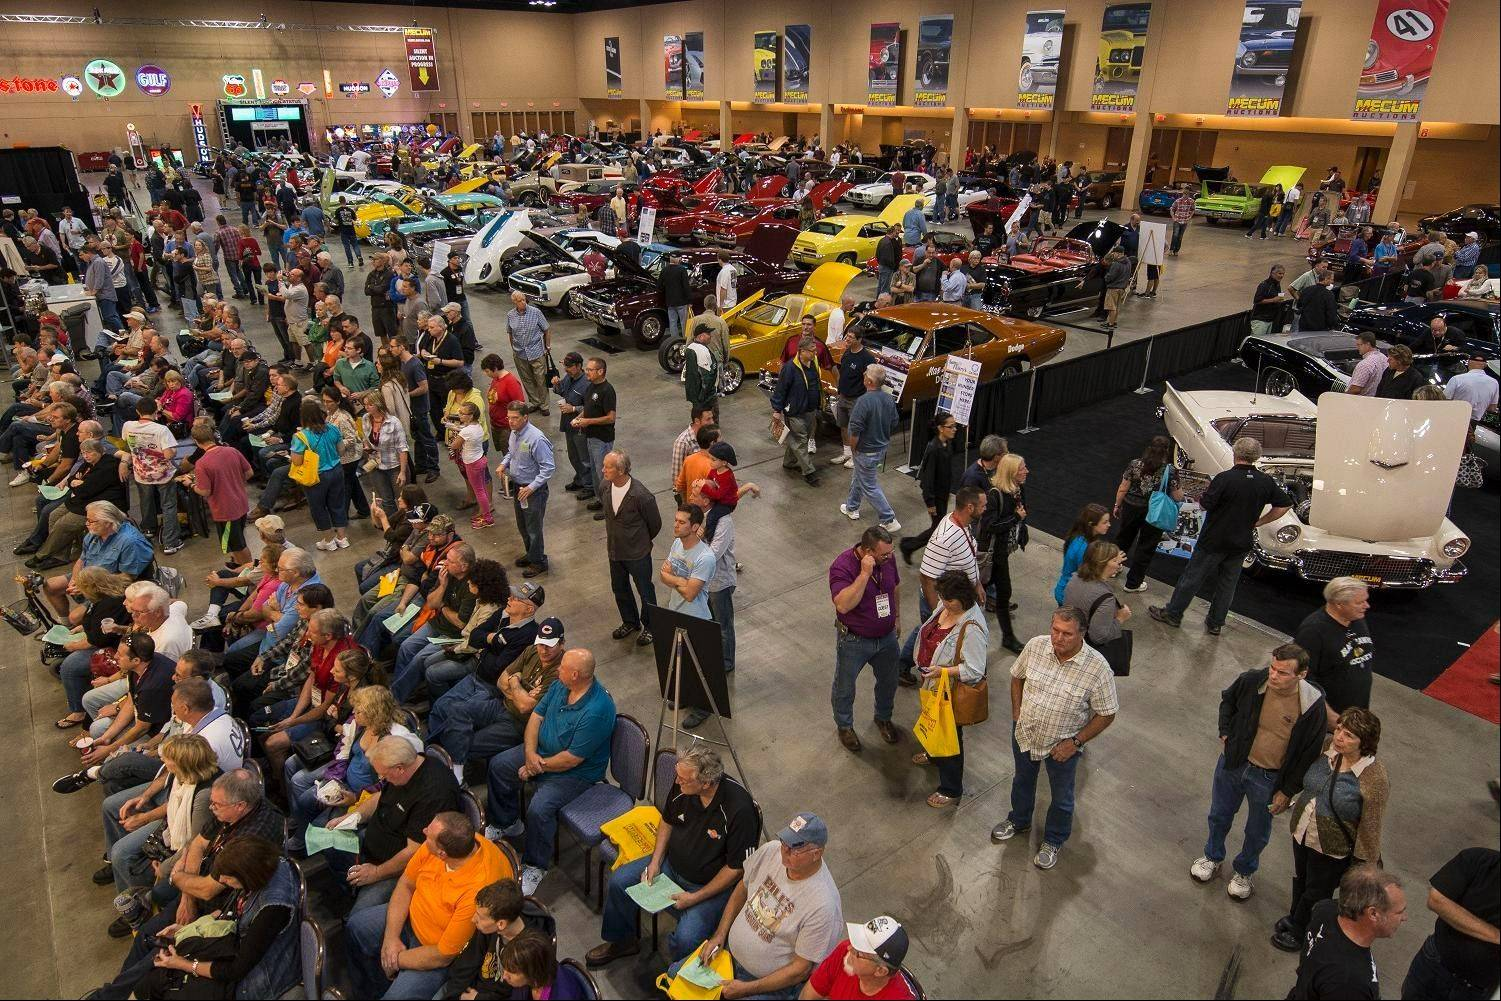 Thousands of people attended the auction at the Schaumburg Convention Center.